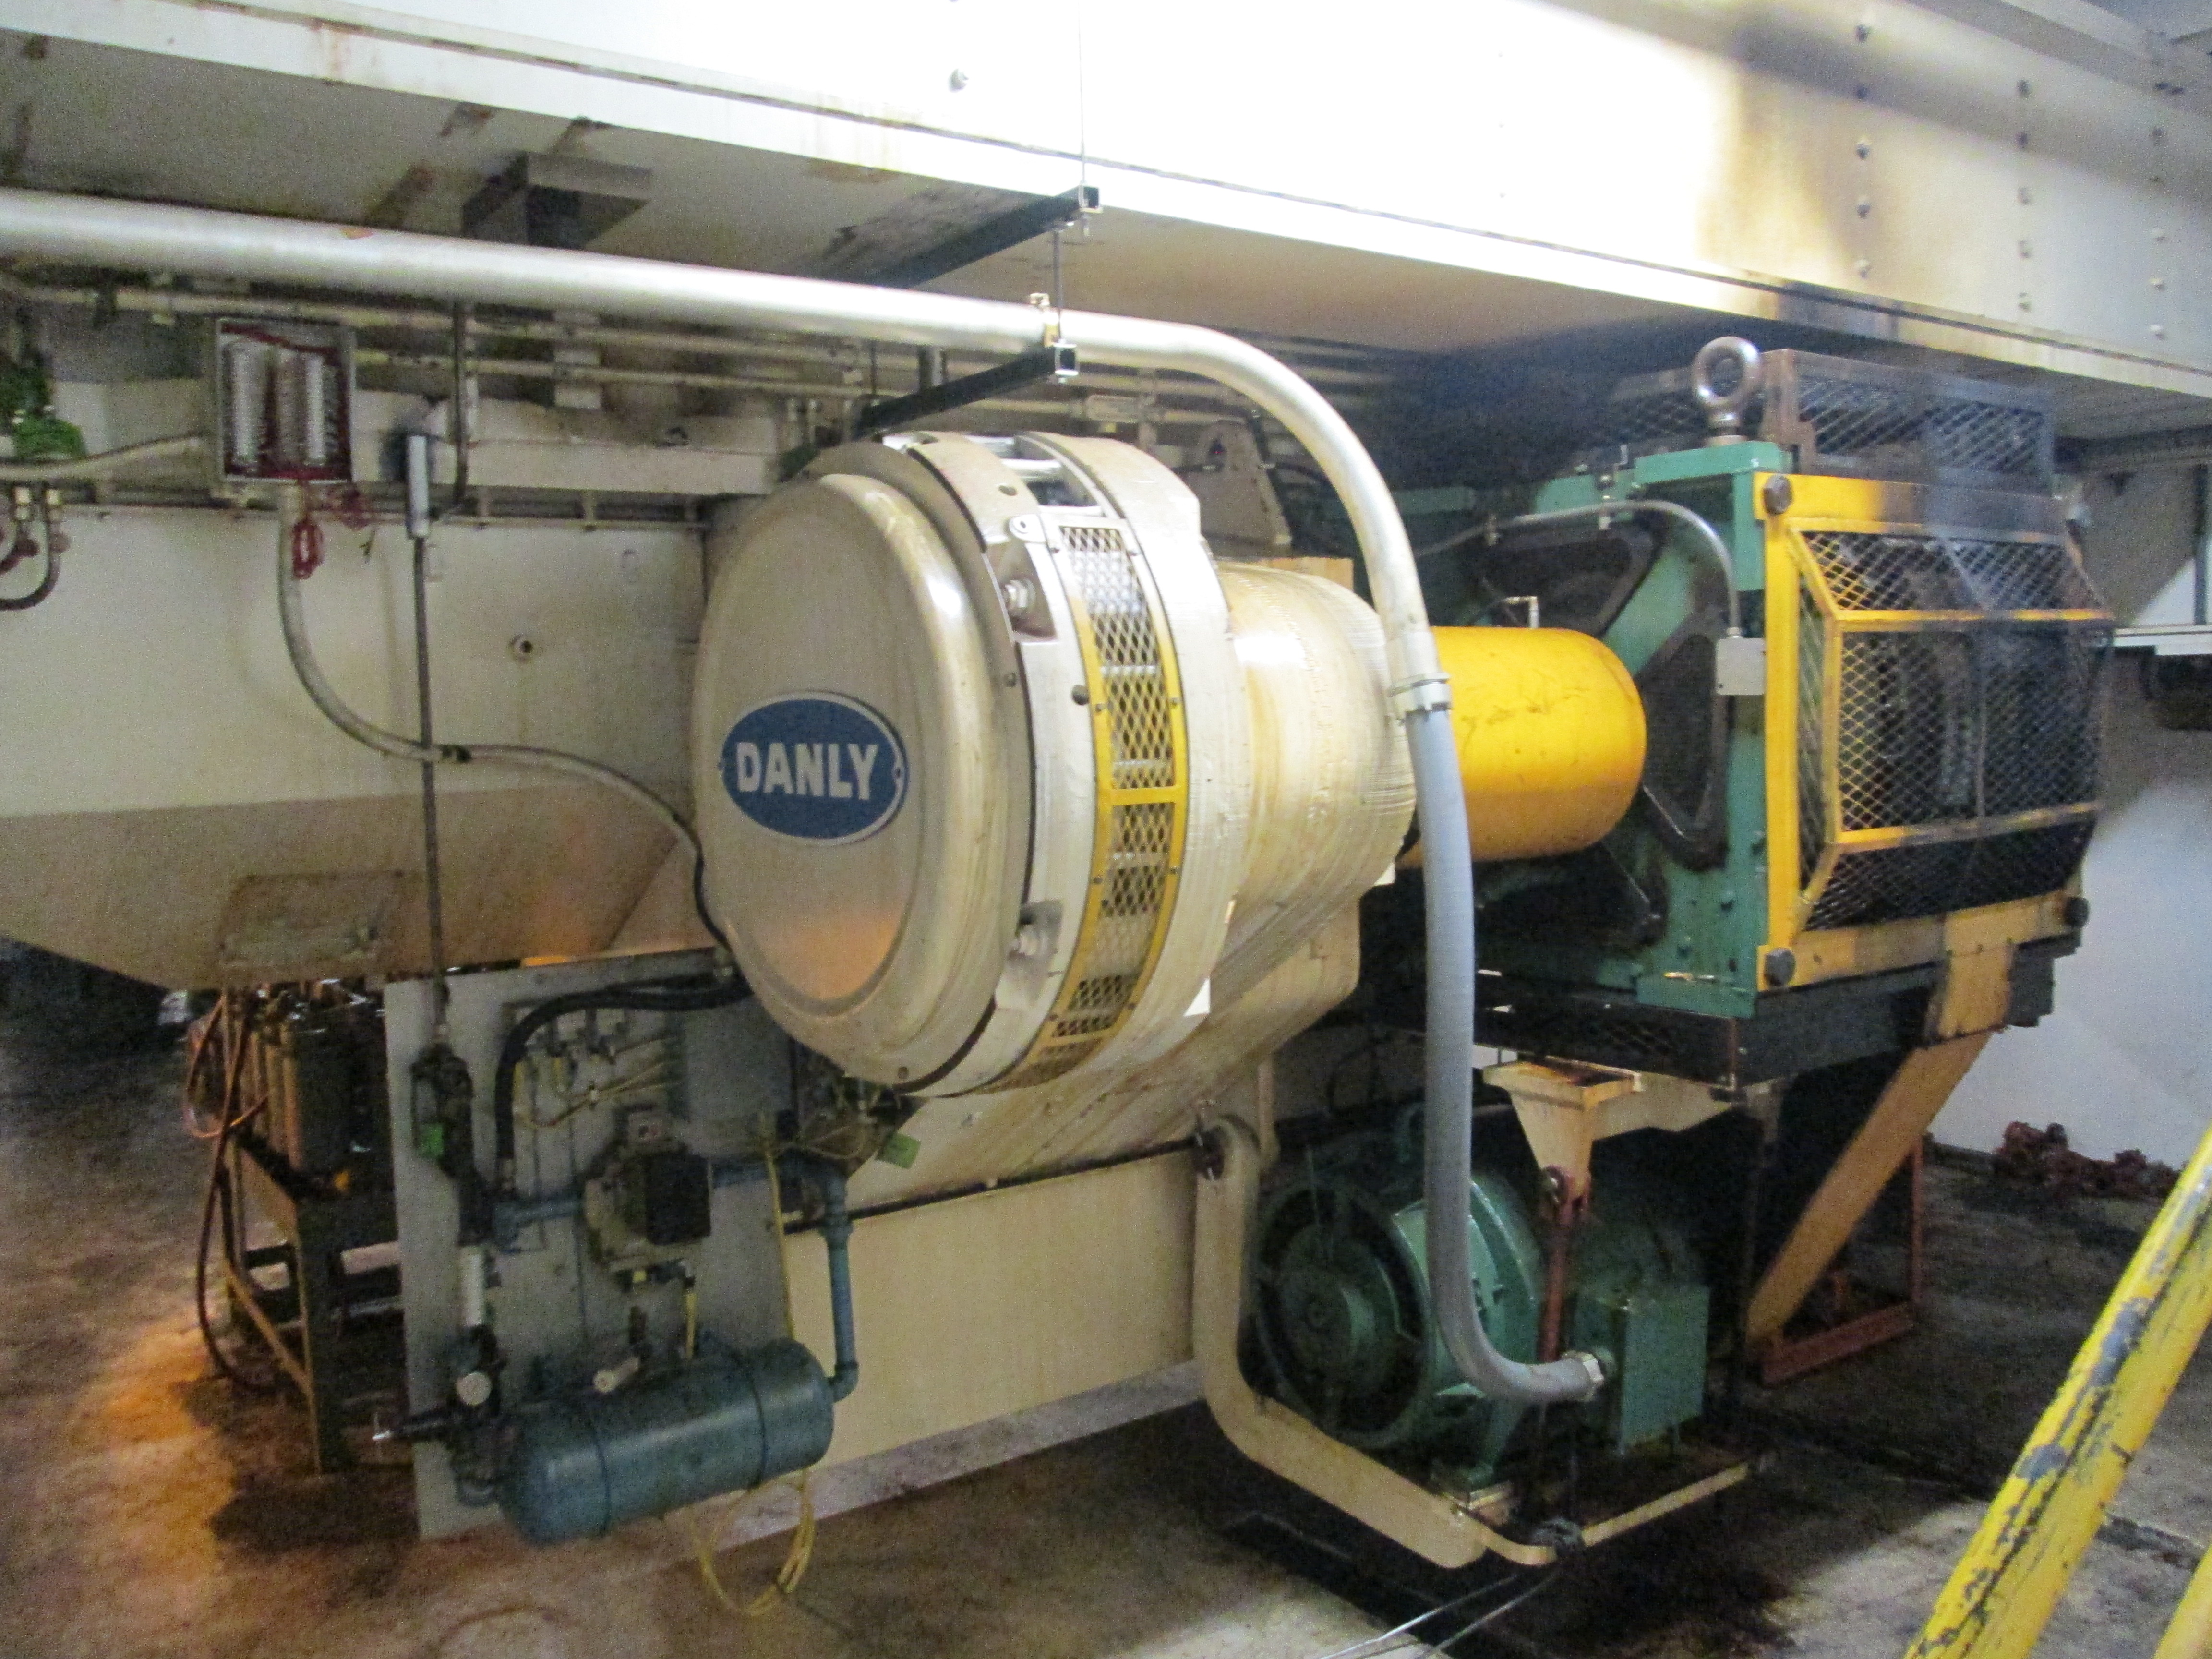 Danly 1000 ton Stamping Press